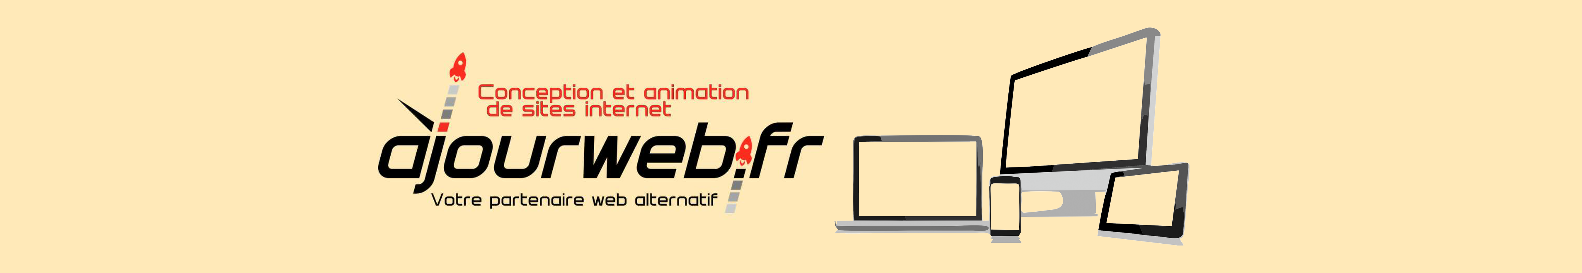 Image-footer